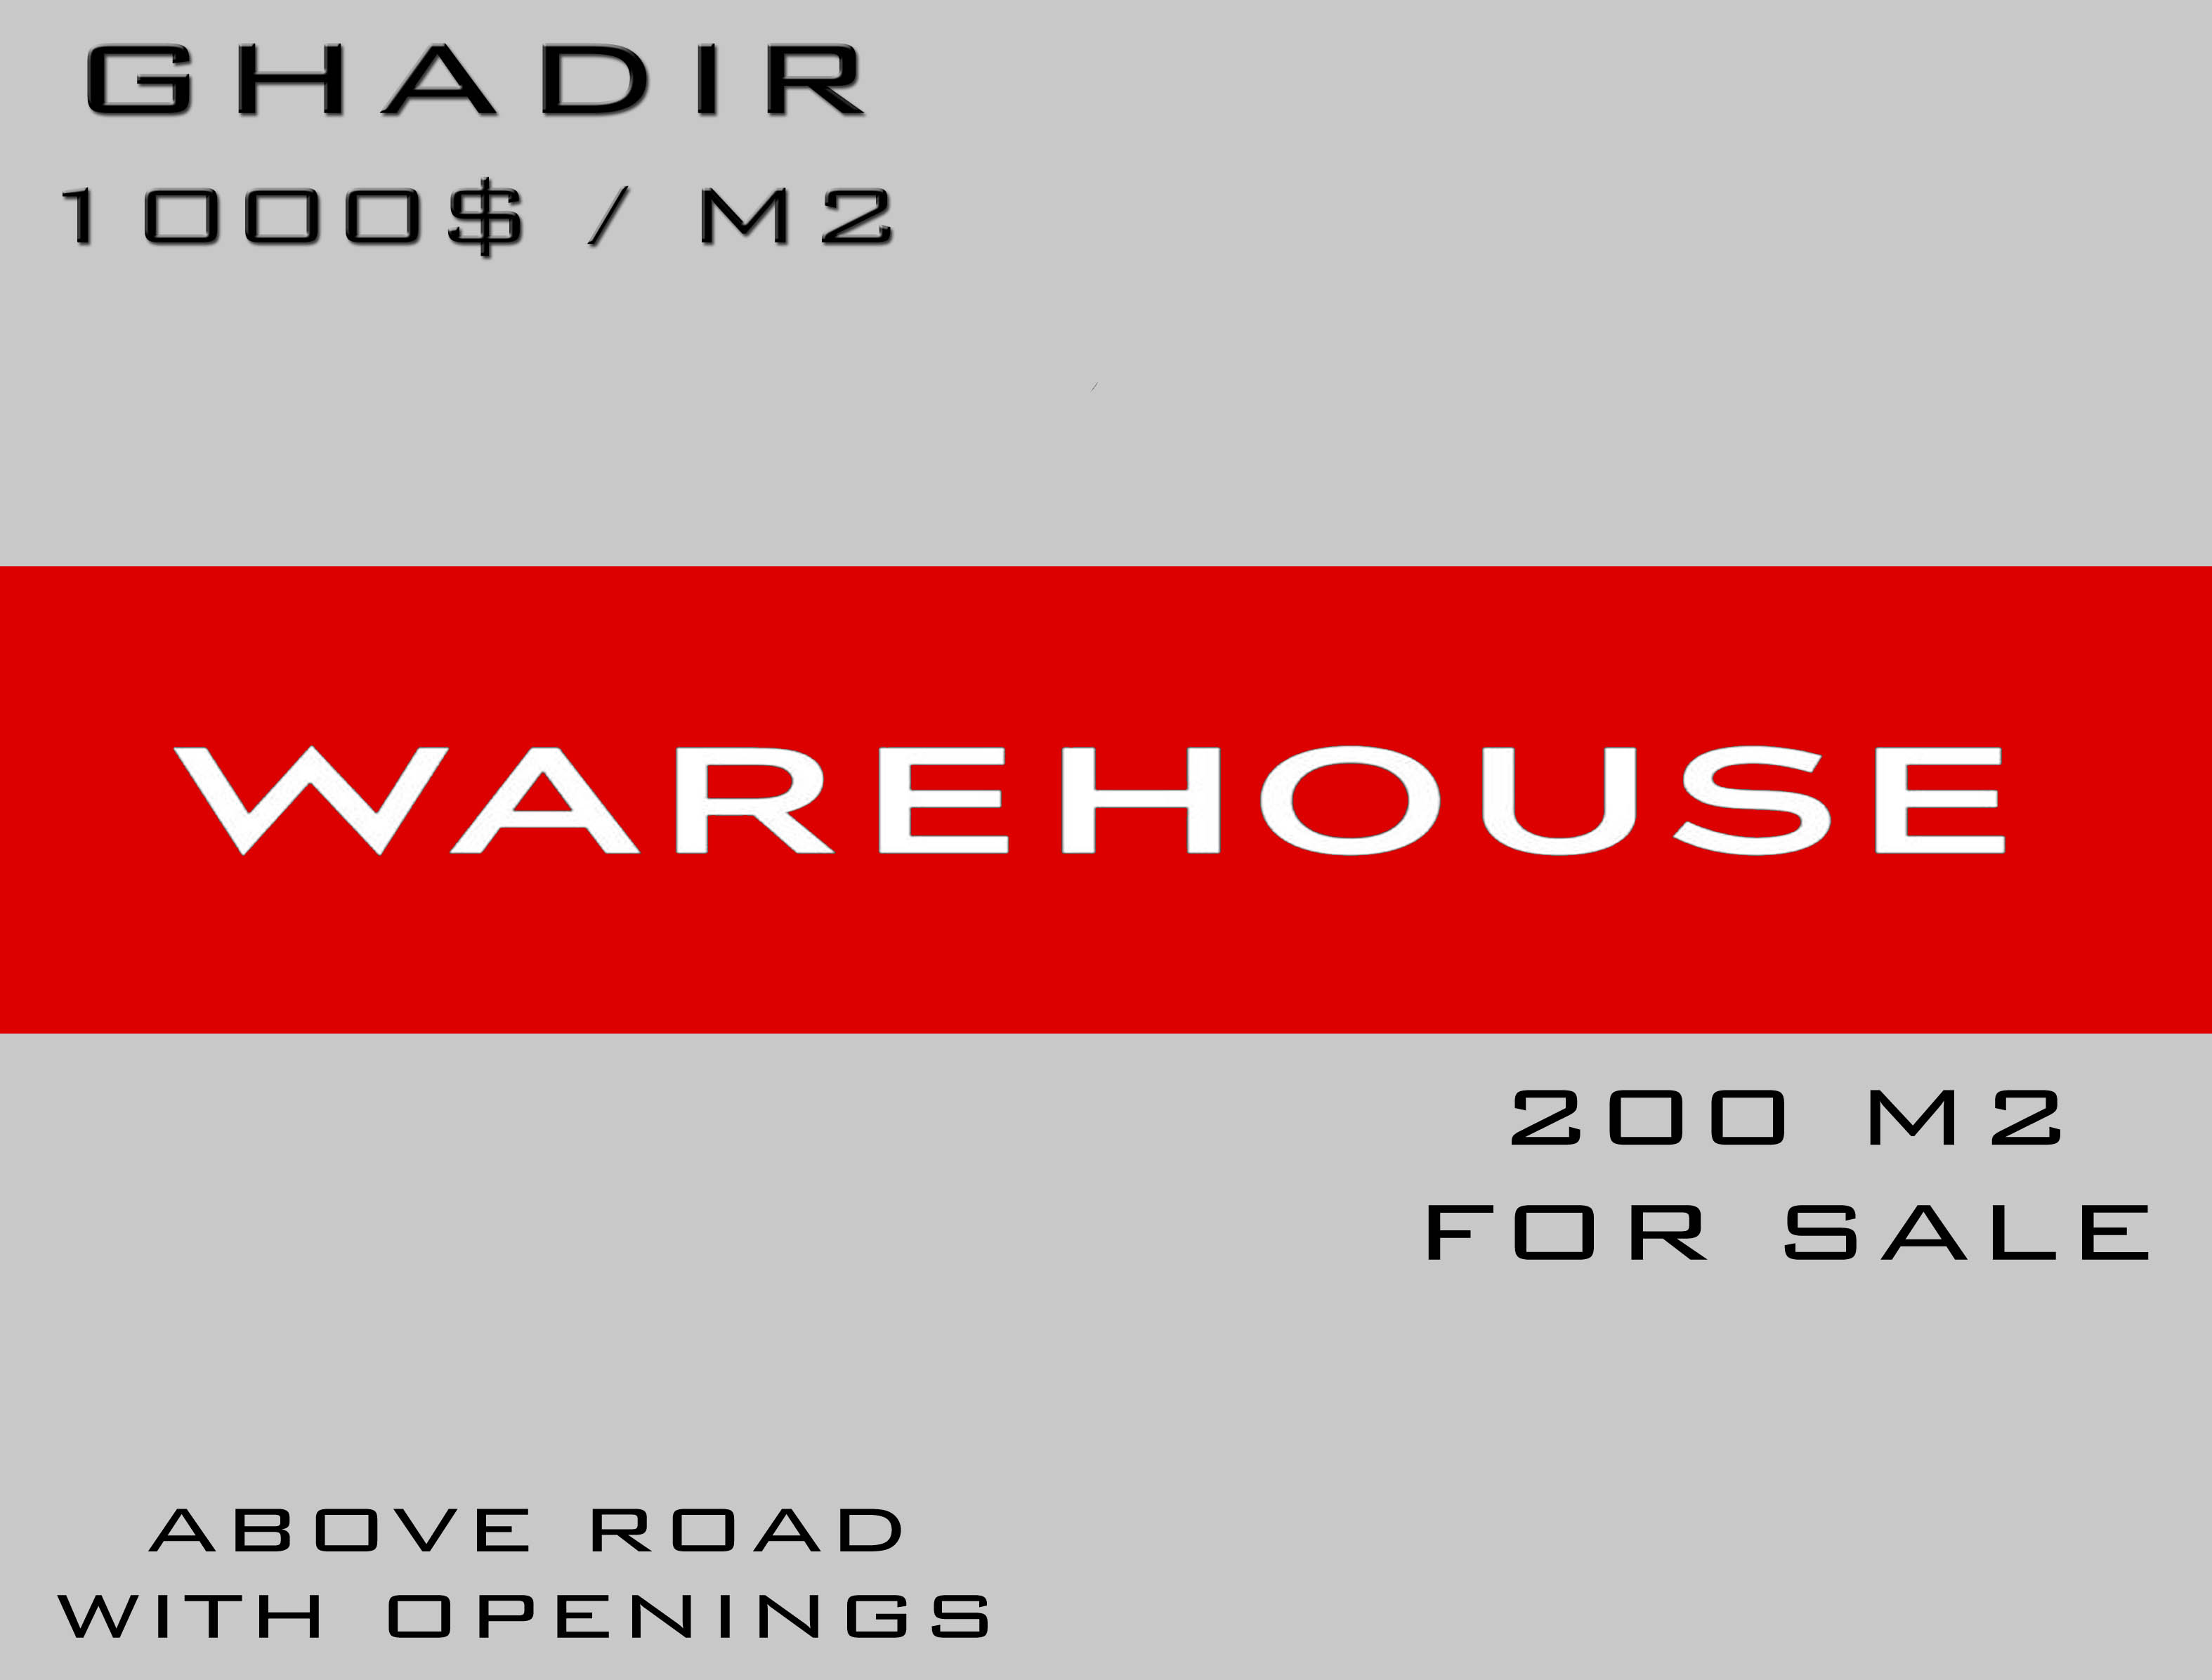 Warehouse, For Sale, Ghadir, Keserwan, Lebanon